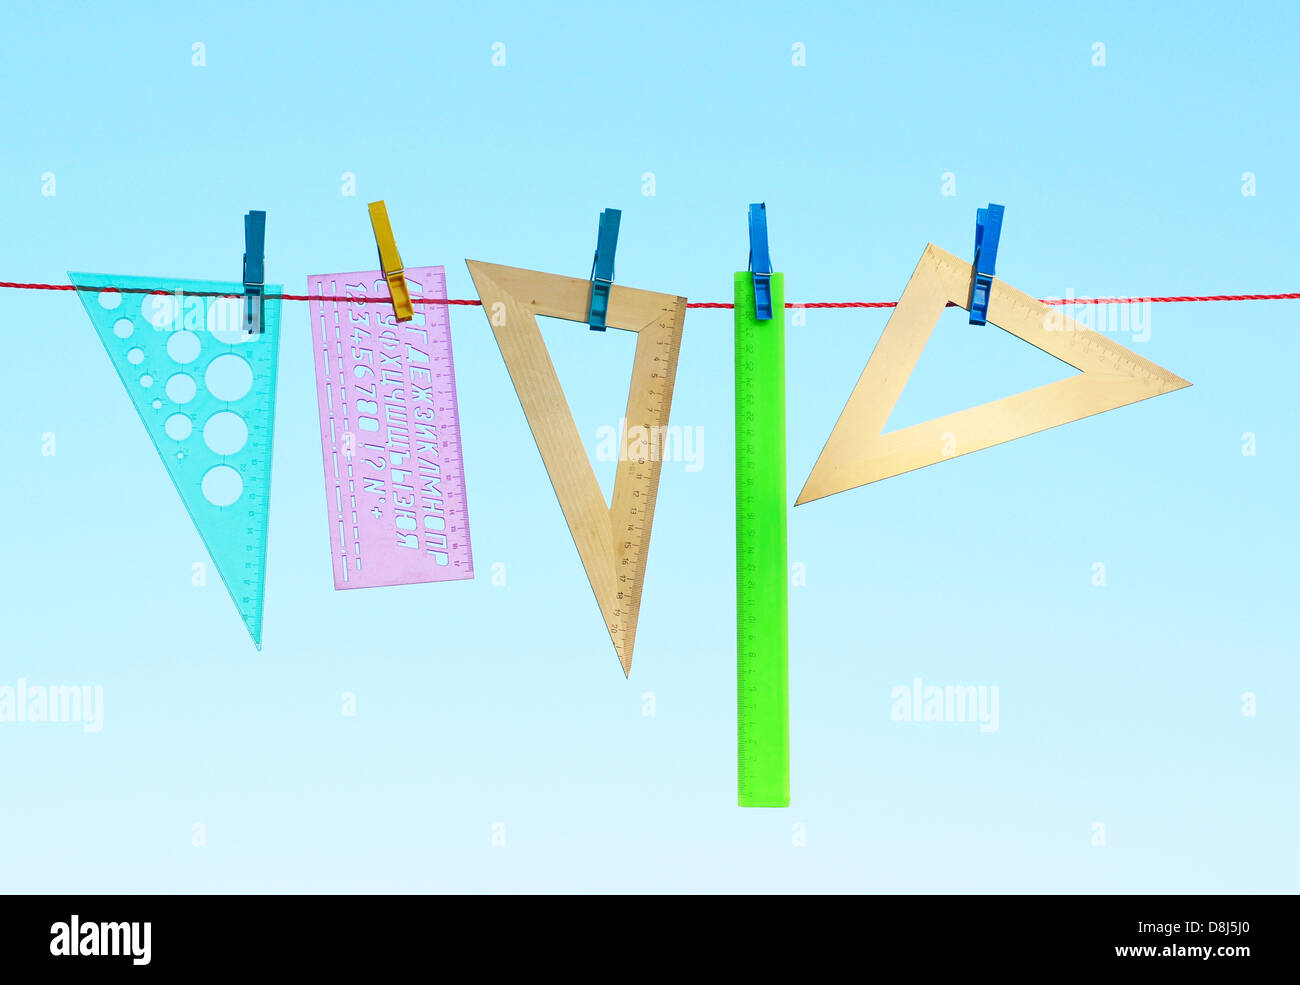 wooden and plastic rulers on washing line against sky Stock Photo